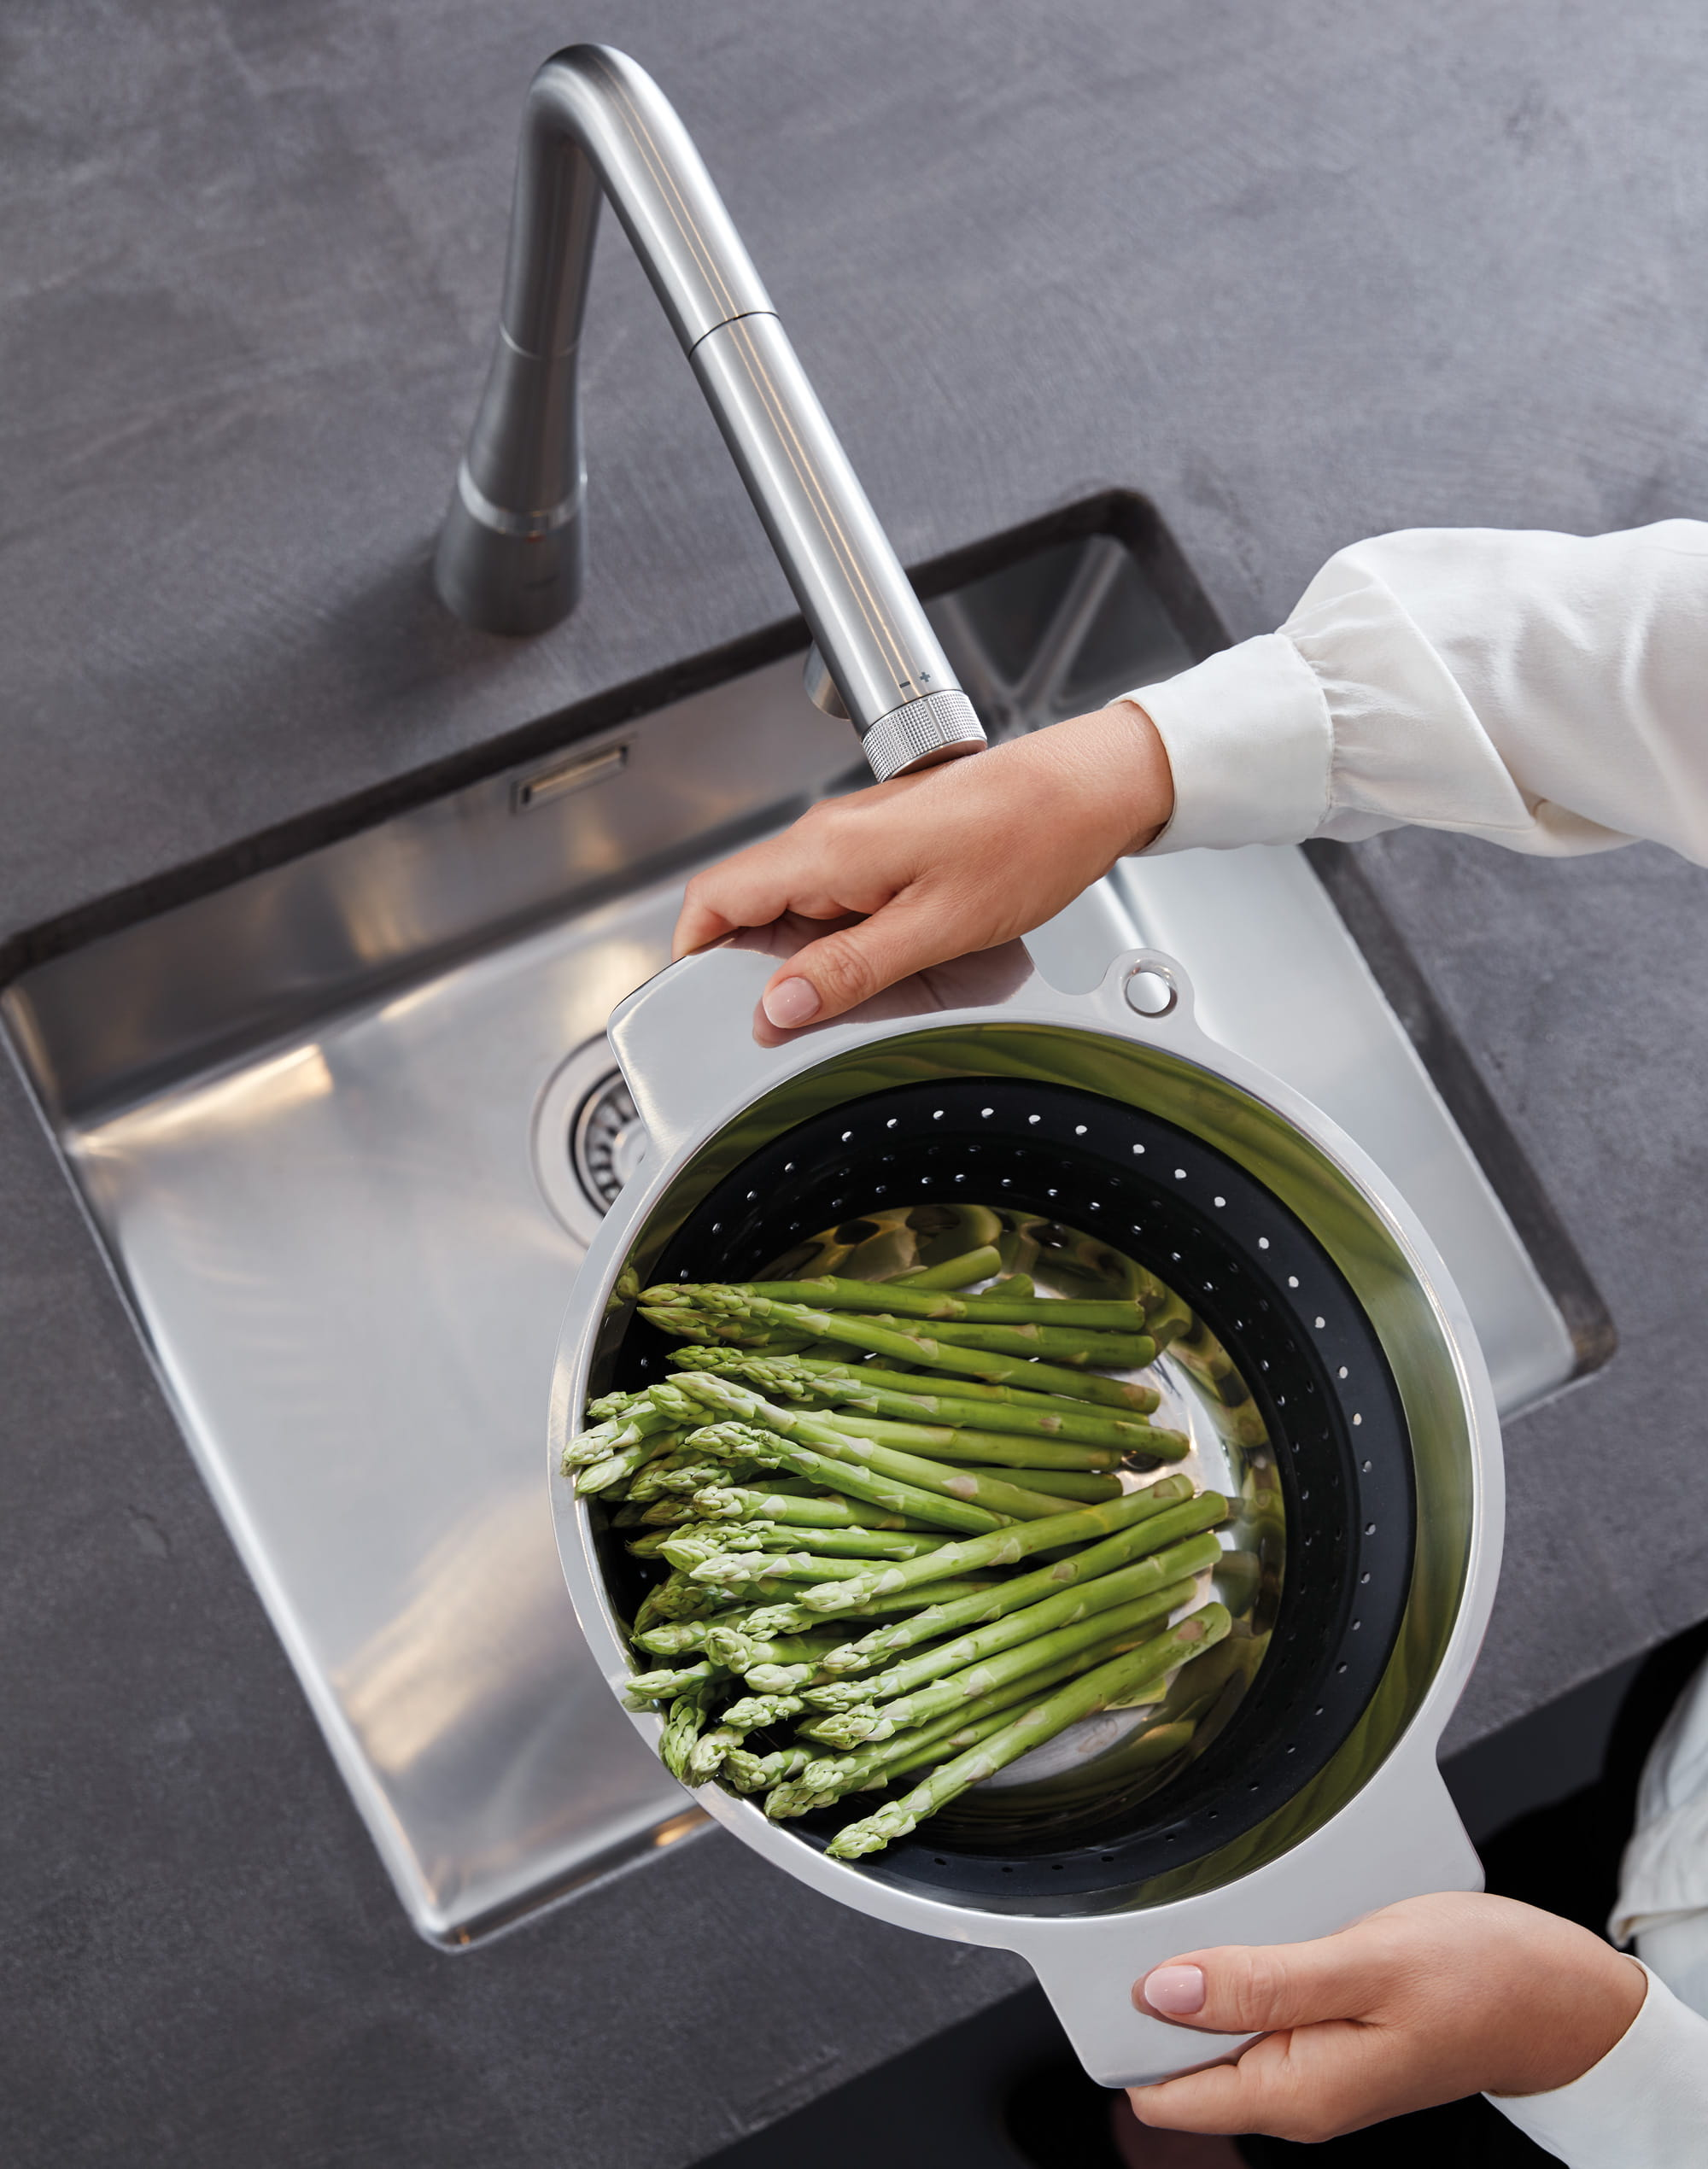 Touch faucet in use washing asparagus in the kitchen